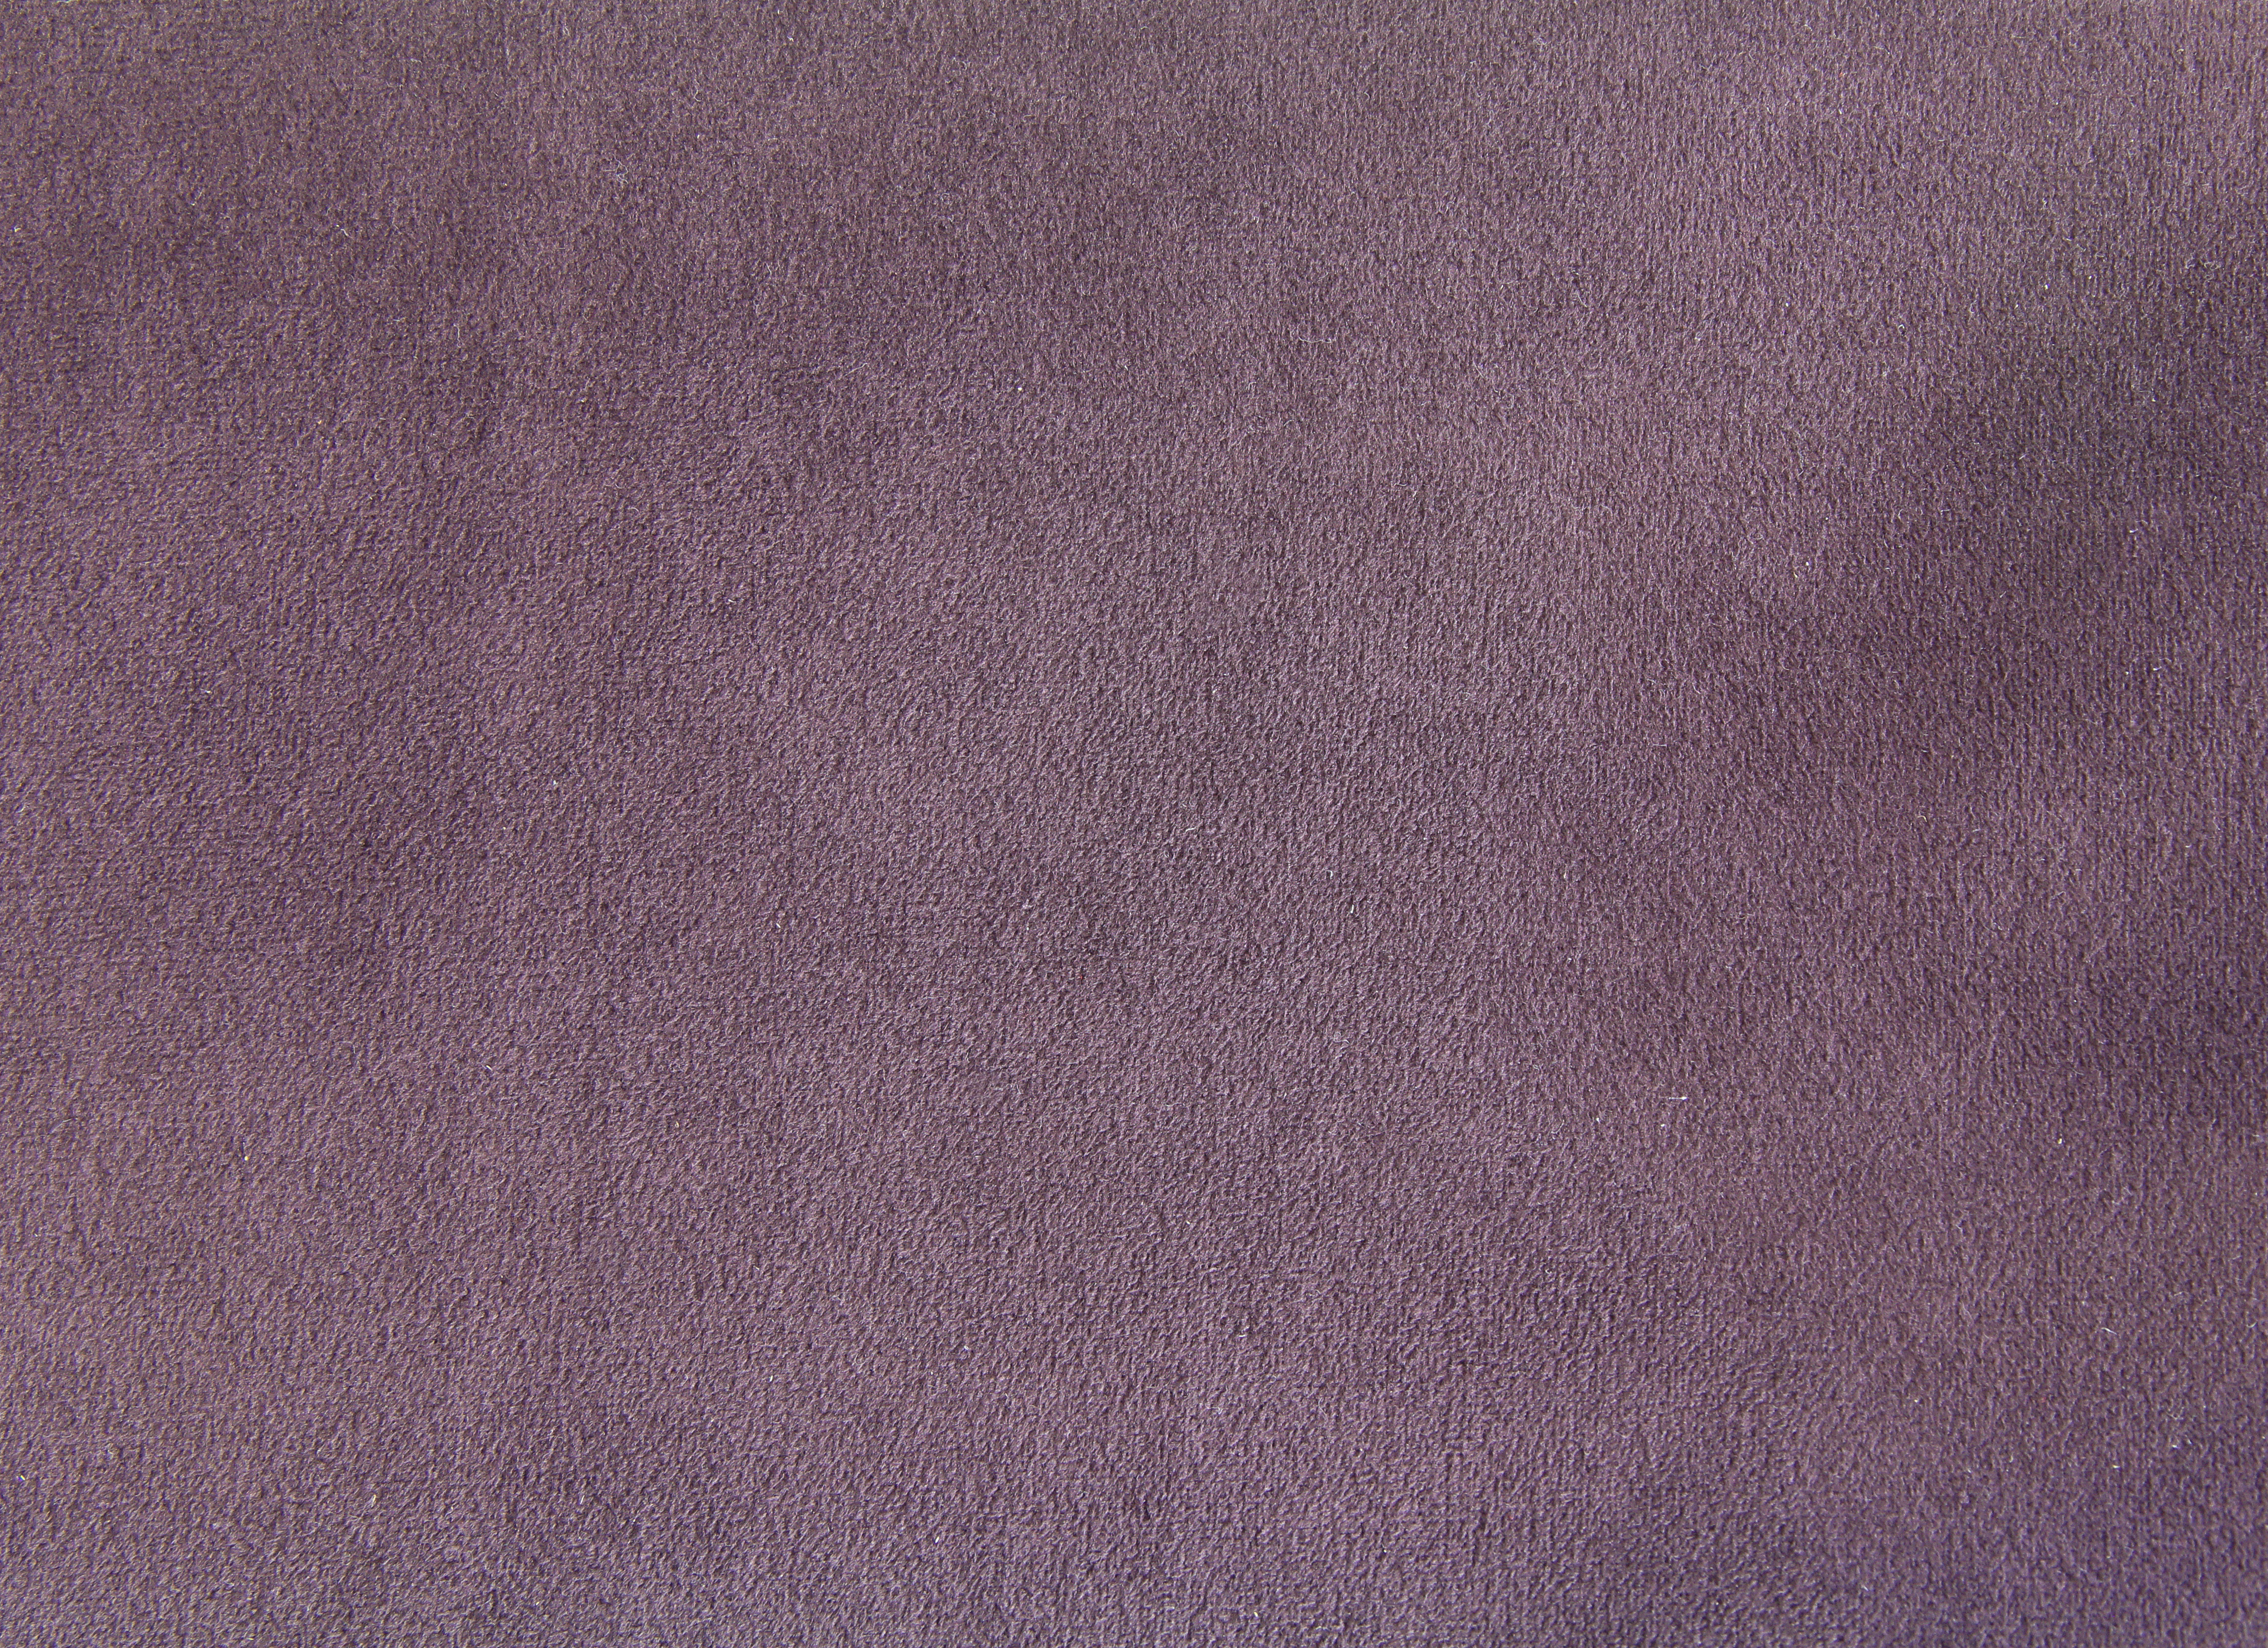 3d Colour Wallpaper Free Download Fabric Textures Archives Page 2 Of 5 Texturex Free